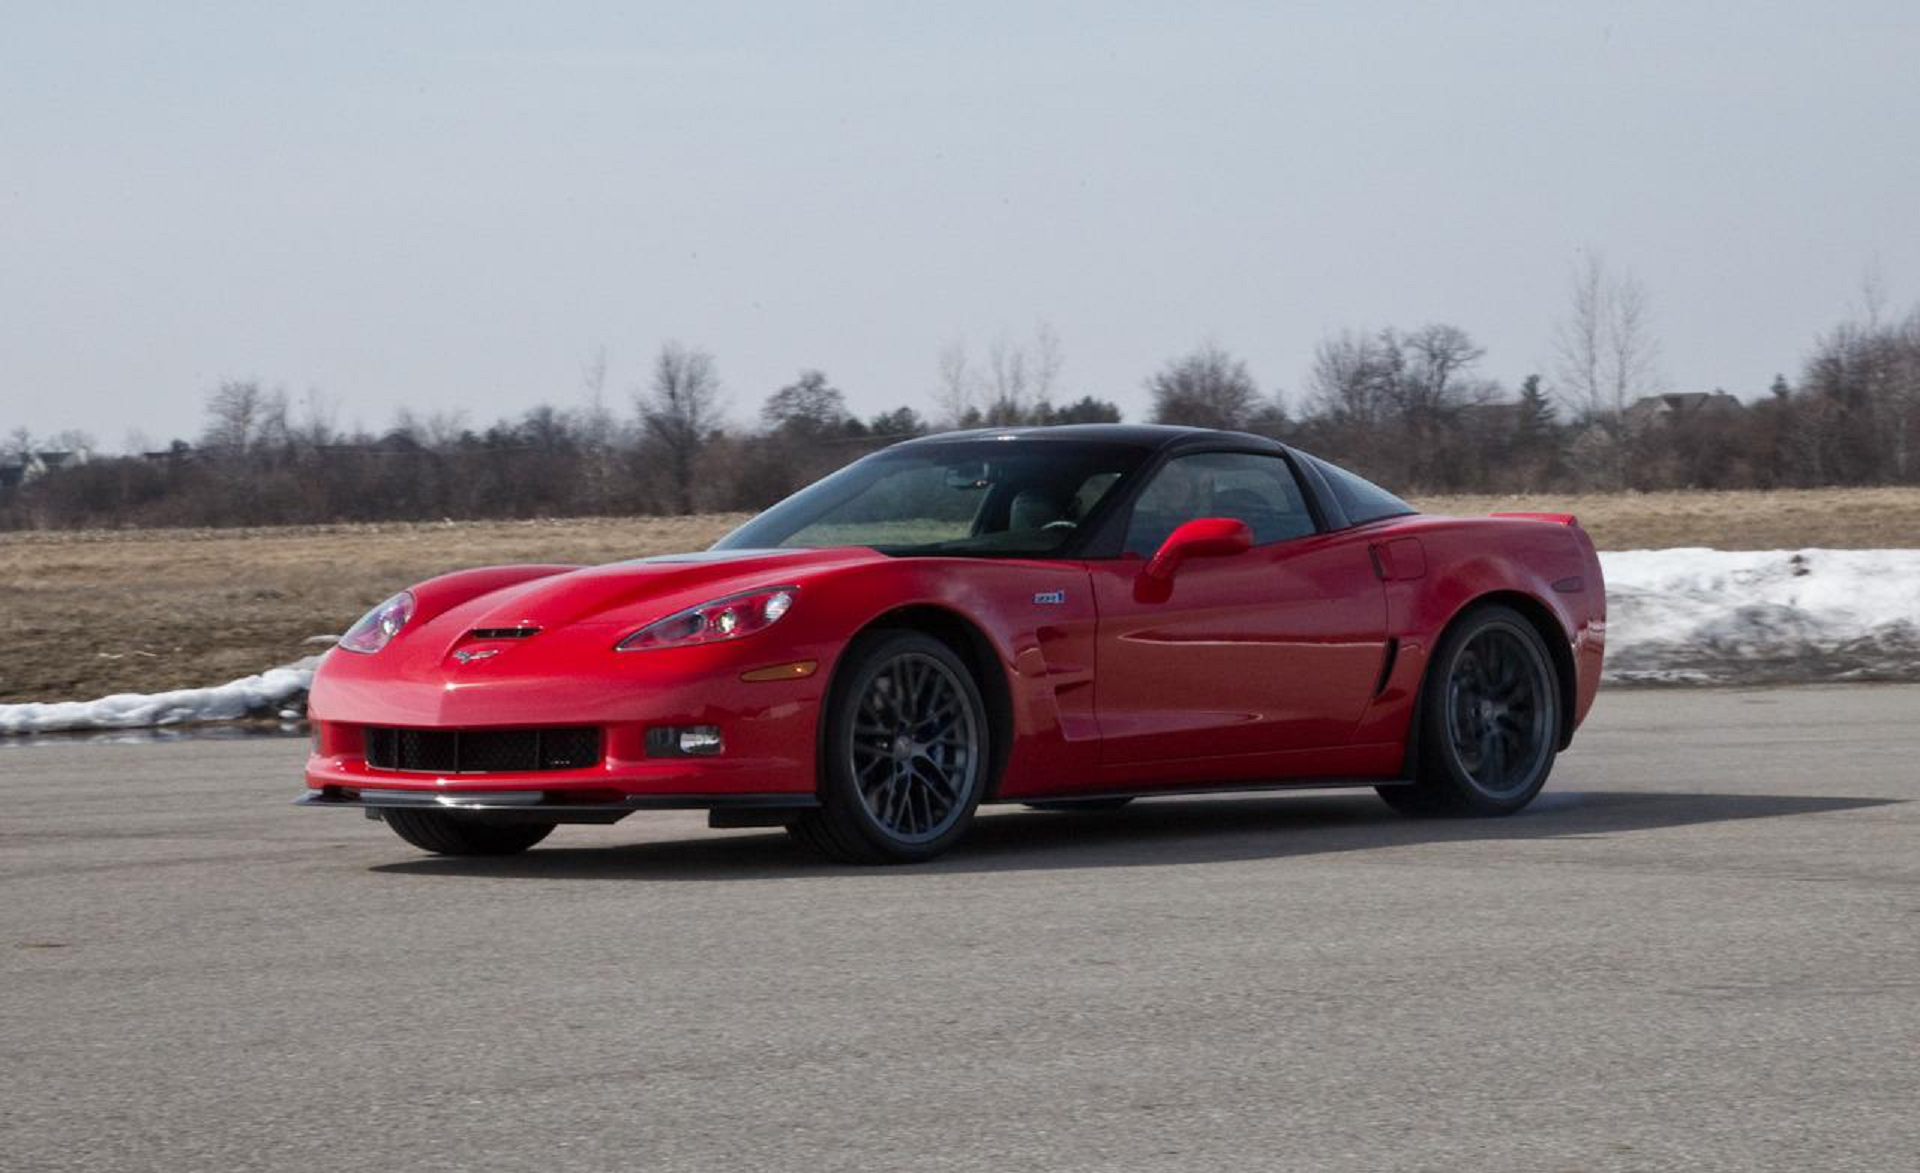 Chevrolet Corvette Zr1 Wallpapers Images Photos Pictures HD Wallpapers Download free images and photos [musssic.tk]